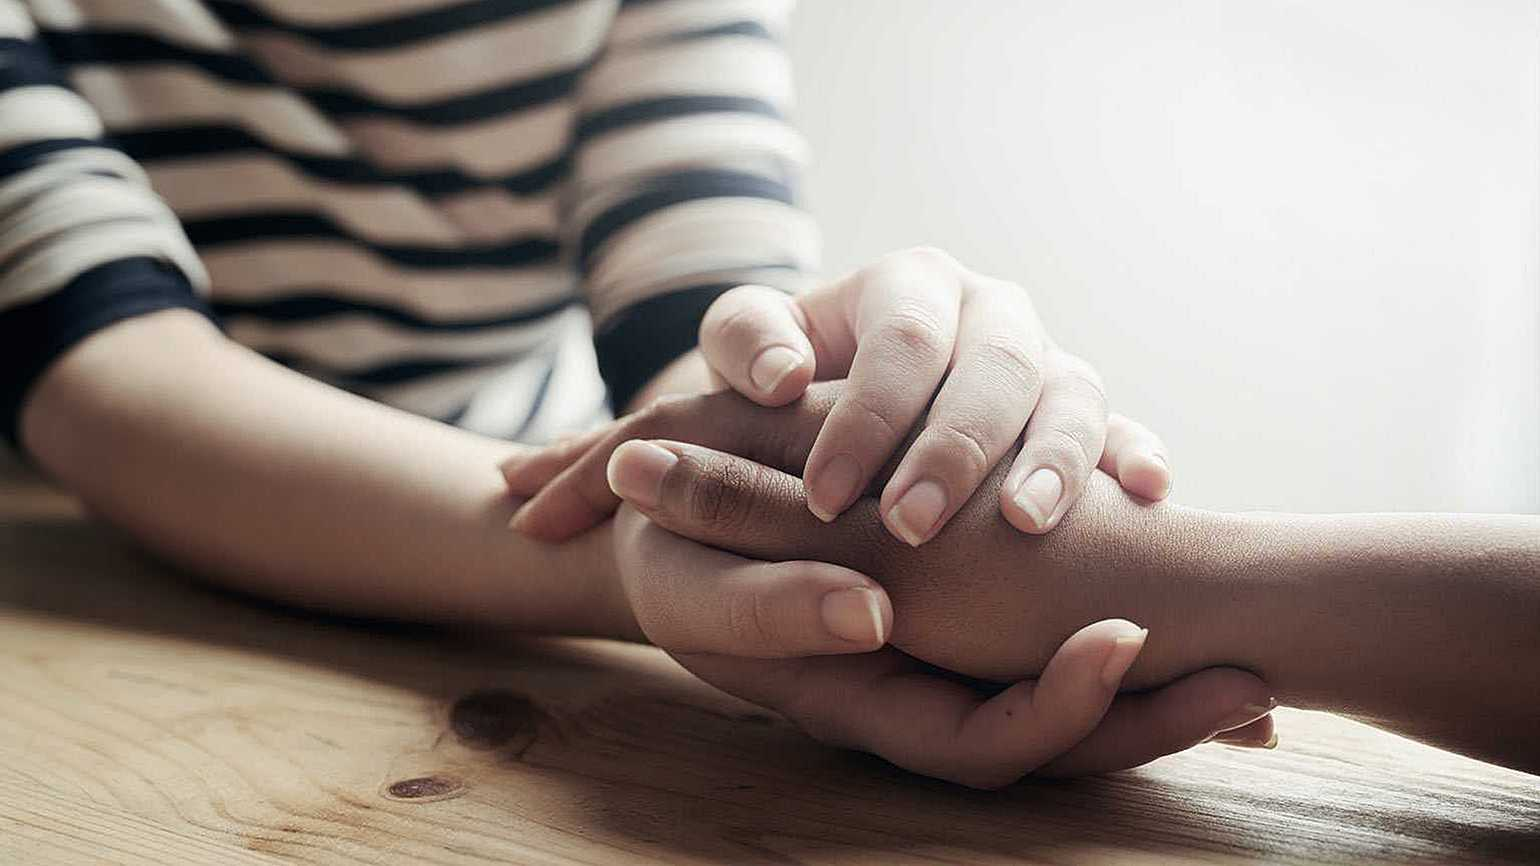 A woman comforts a grieving friend